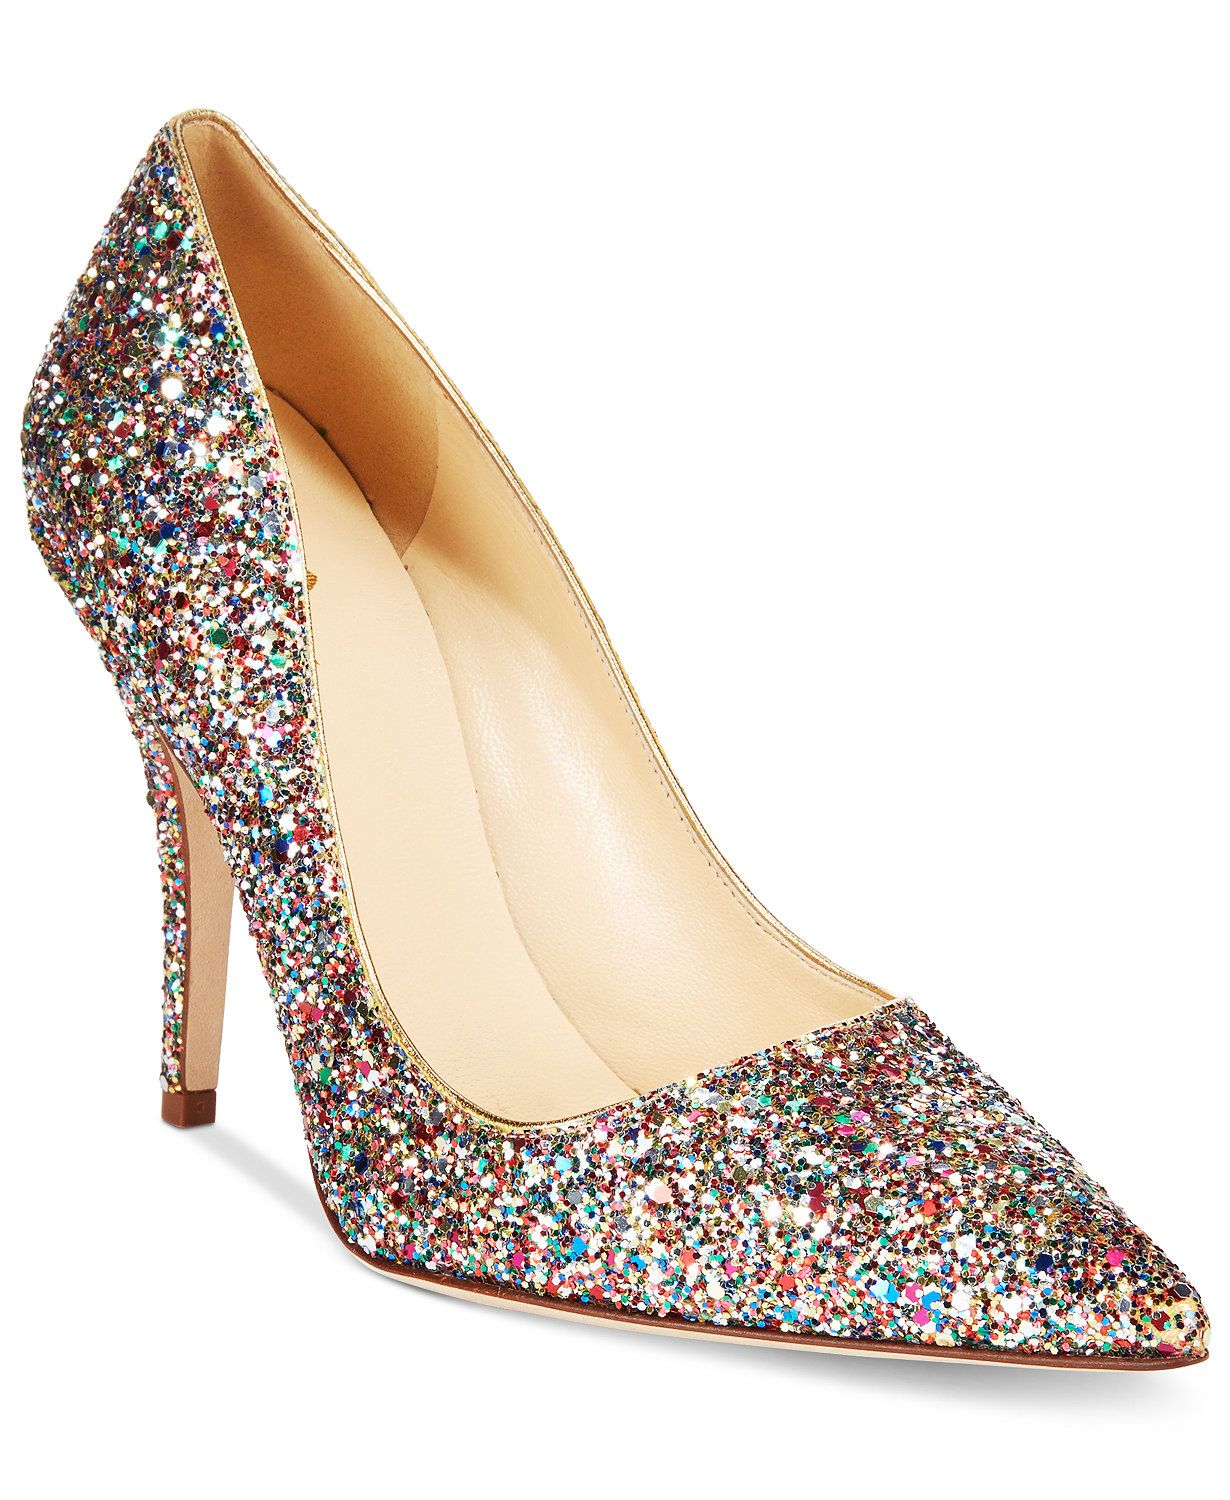 b7b38bec81c7 kate spade new york Licorice Too Multicolor Glitter Pumps